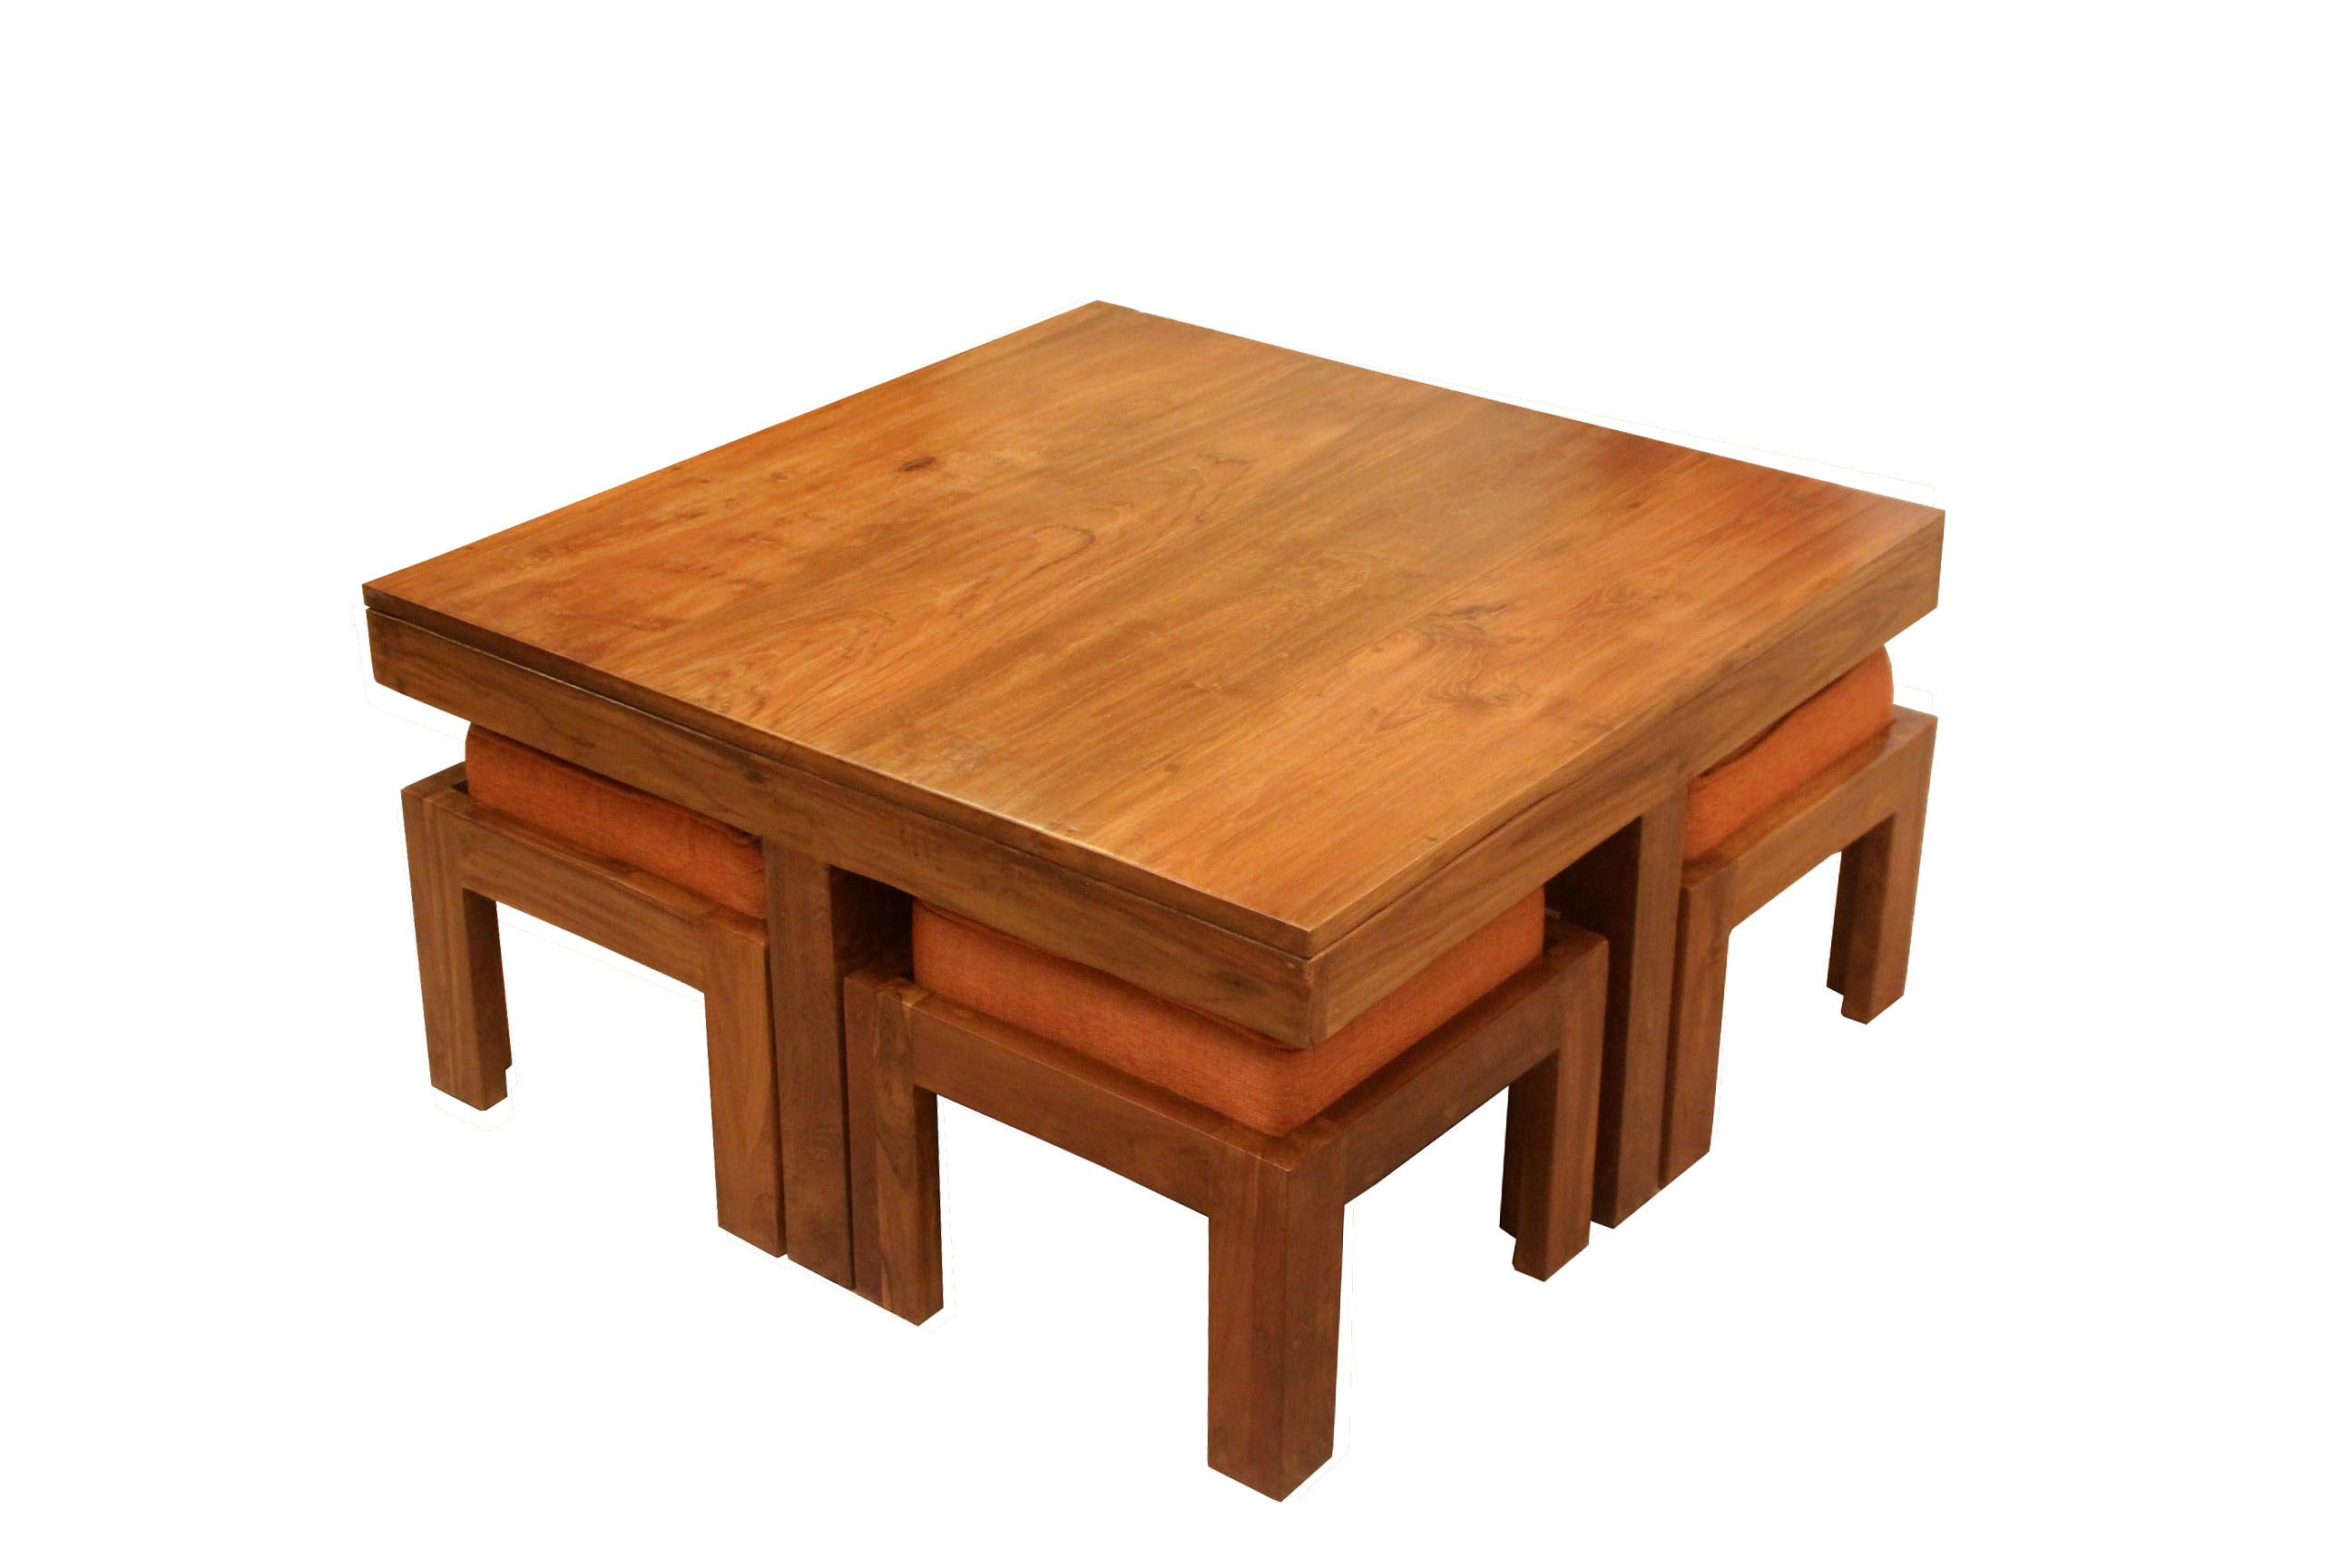 Teak Wood Coffee Table Set Cf 33 Details Bic Furniture India